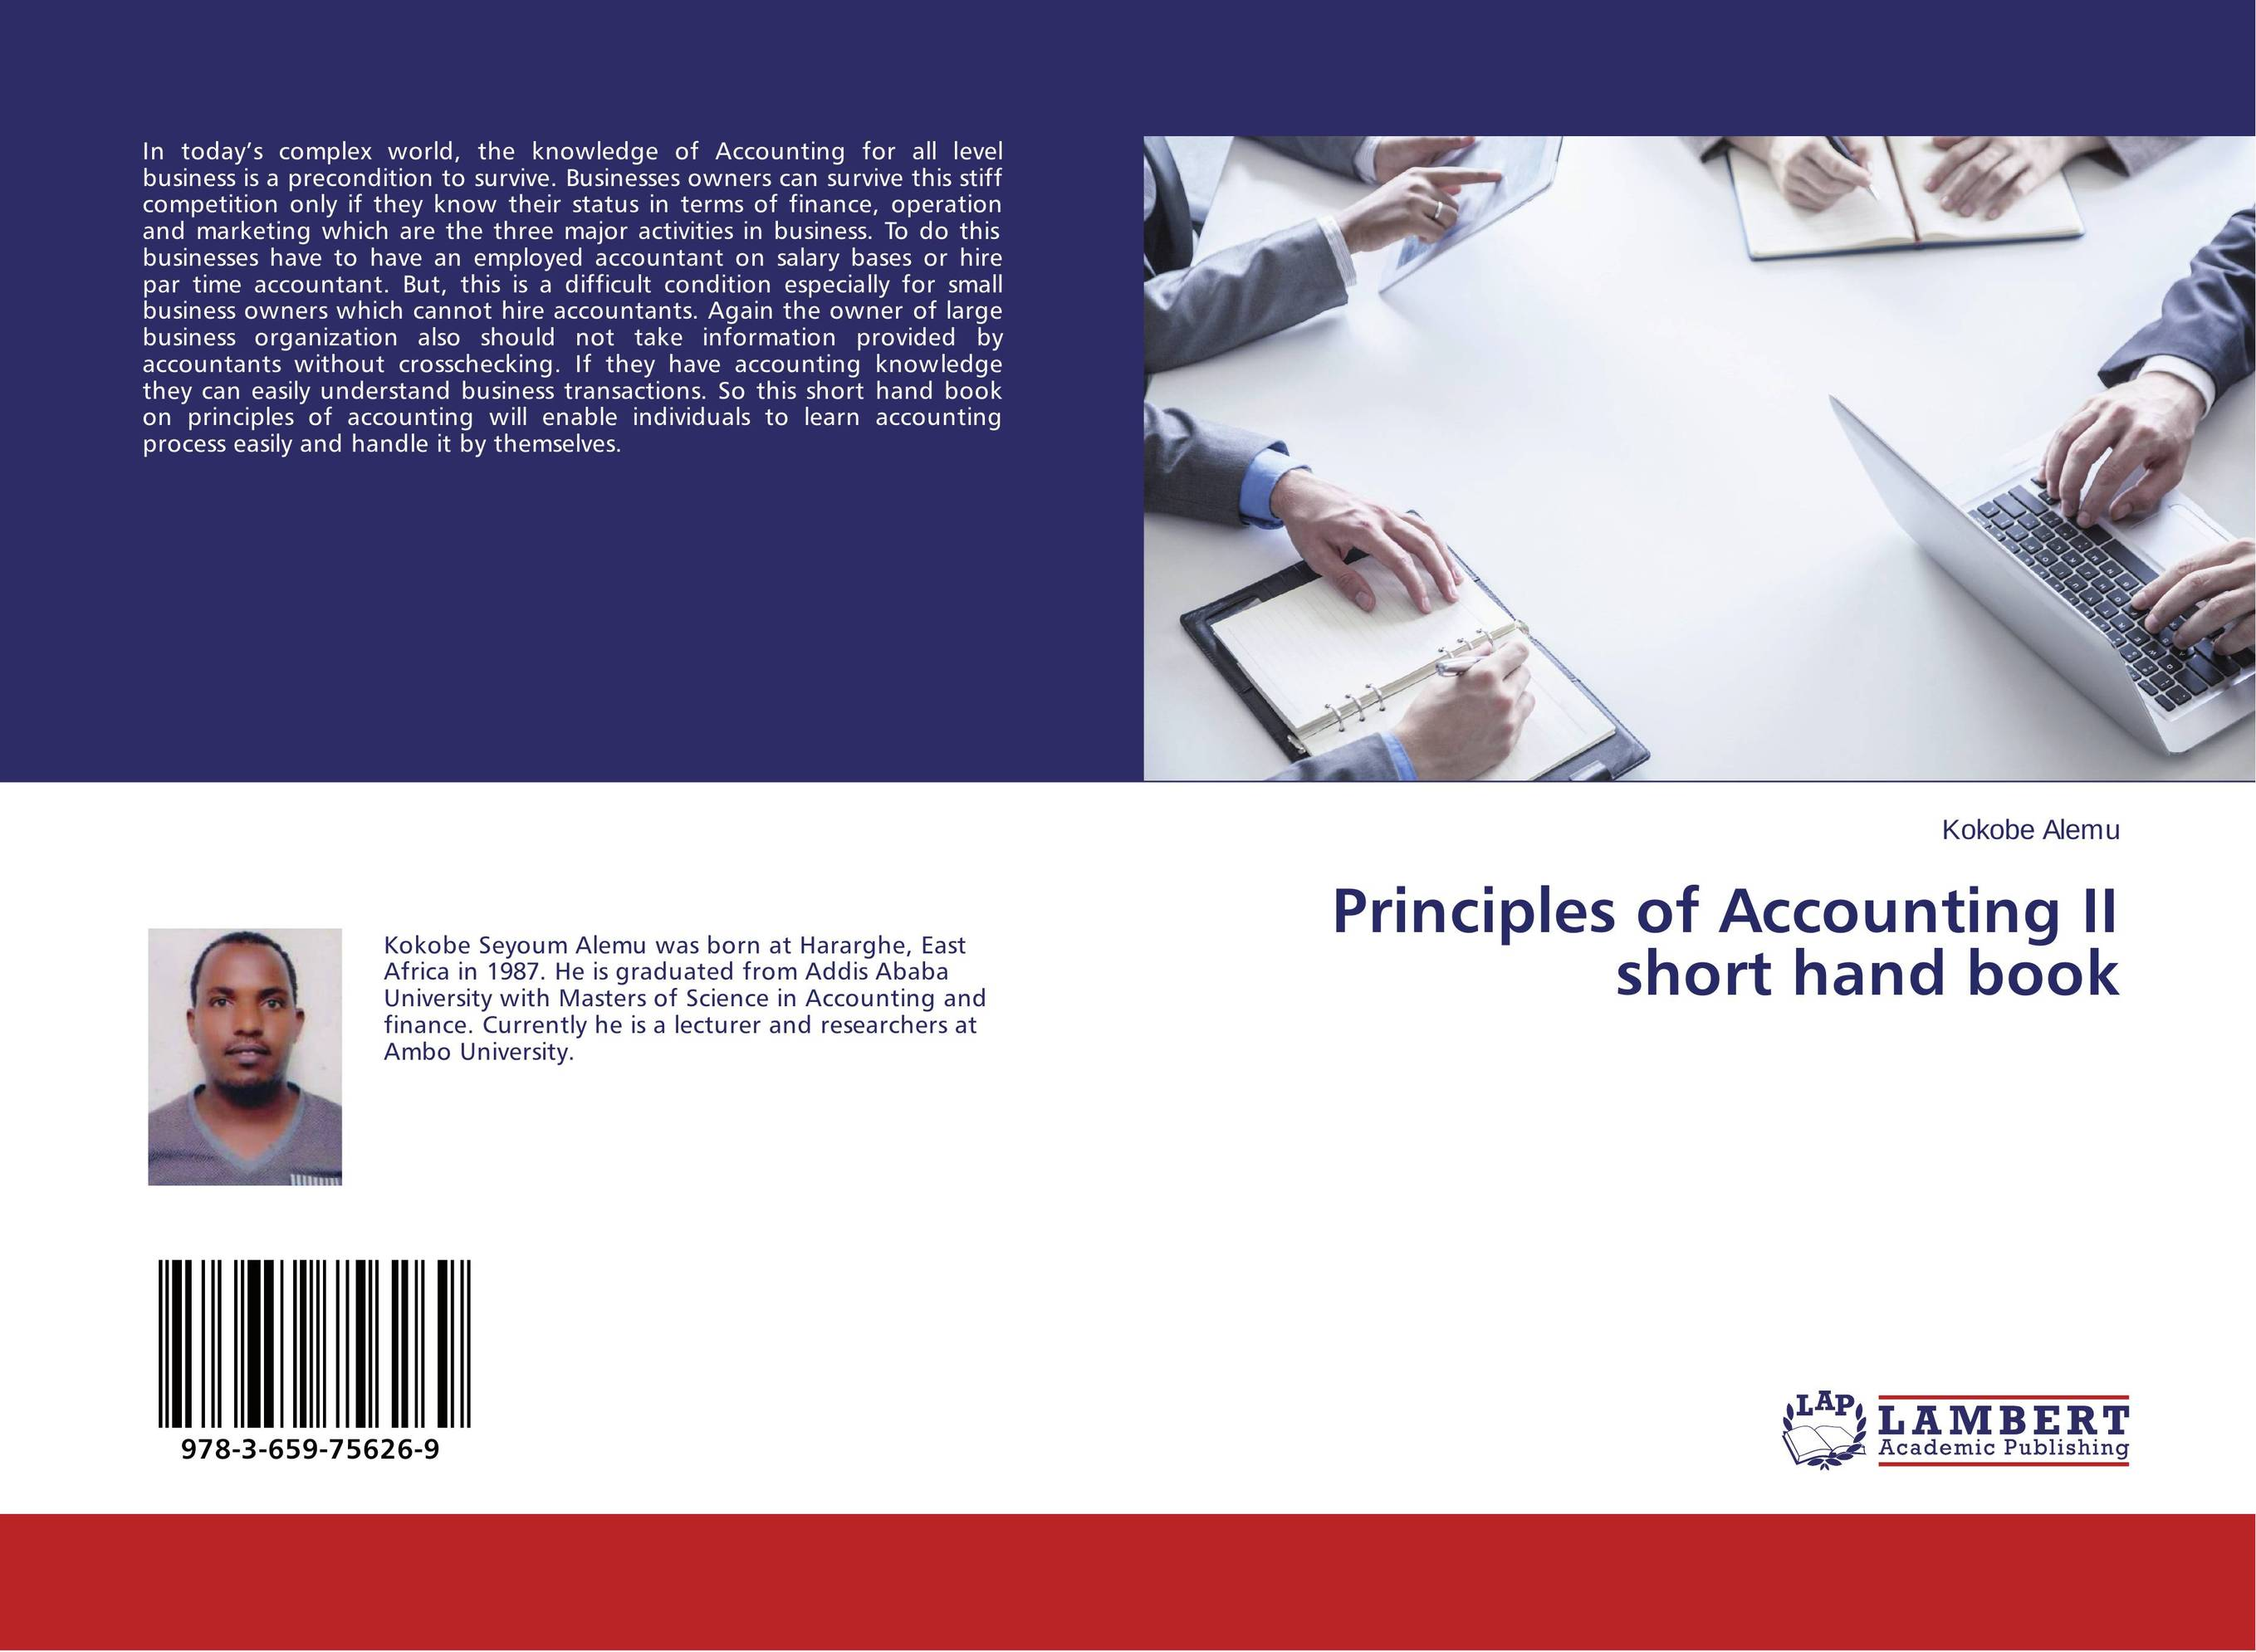 Principles of Accounting II short hand book